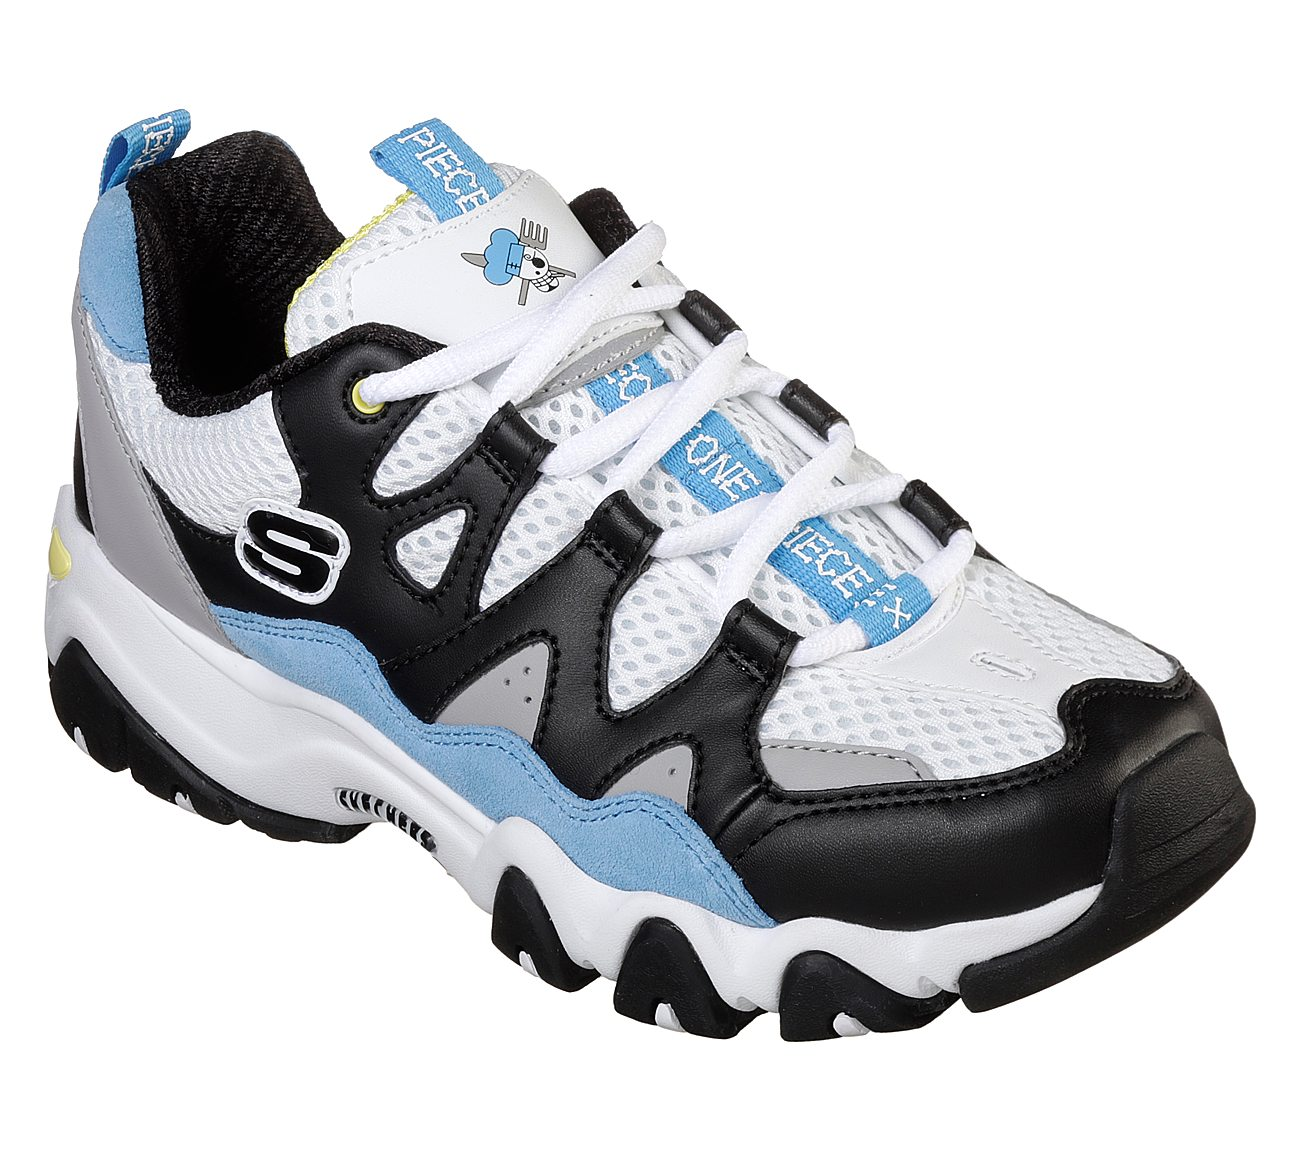 3942425a8259 Buy SKECHERS D Lites 2 - One Piece Sport Shoes only  86.00